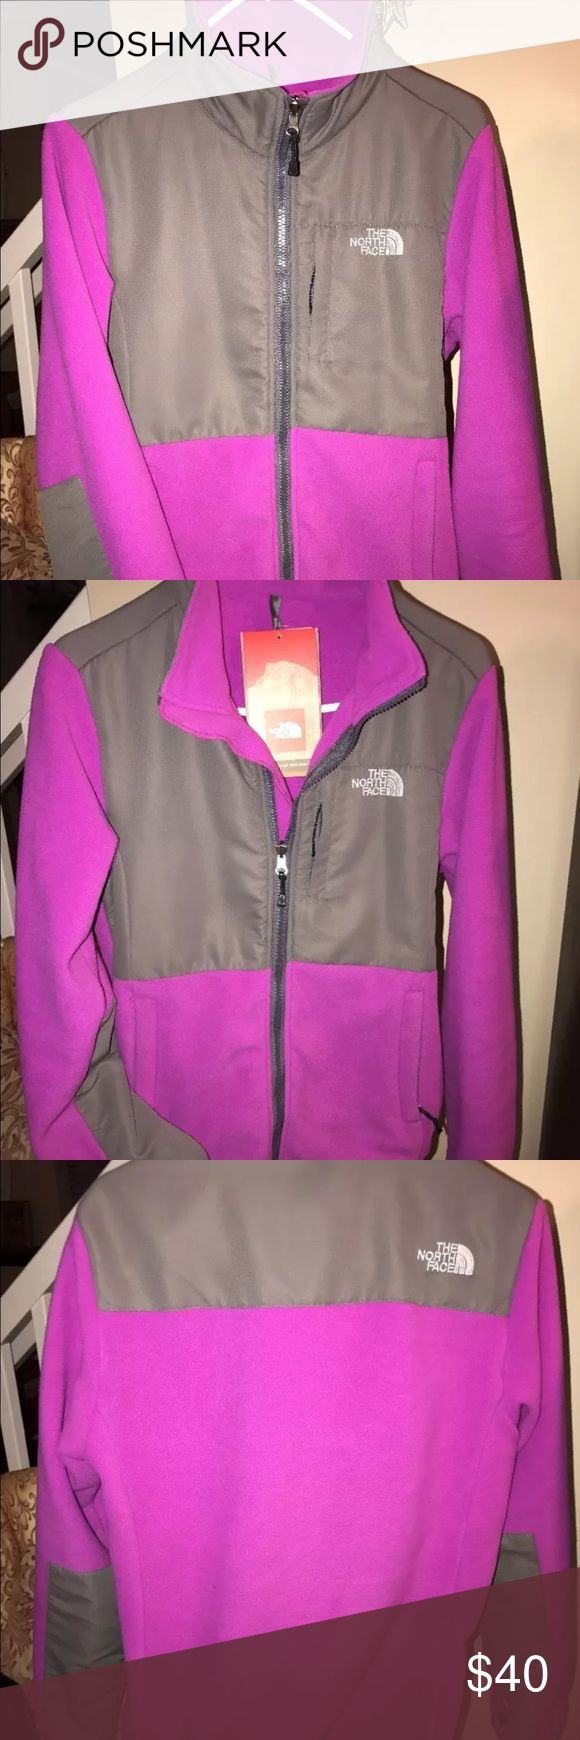 New NWT North Face purple Denali polartec jacket new with tags North face women's Dinali jacket in size small. The color is a dark purple and gray. Features a full zip style with zipper pockets on sides and on chest. Polartec fleece material makes this jacket super warm as your base shell for your ski jacket system or as a regular every day coat!  I purchased two of the same color- one for me one for my daughter and we ended up sharing the one. In excellent like new condition. Comes from a…